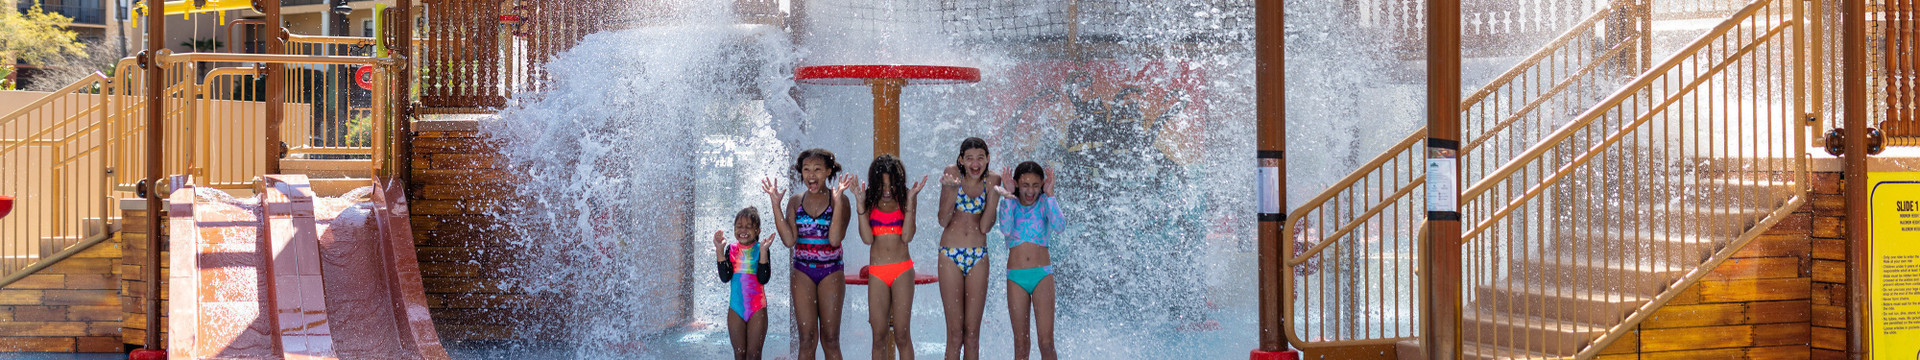 Book Orlando's #1 water park resort and get up to $100 FREE daily resort credit for a limited time now!